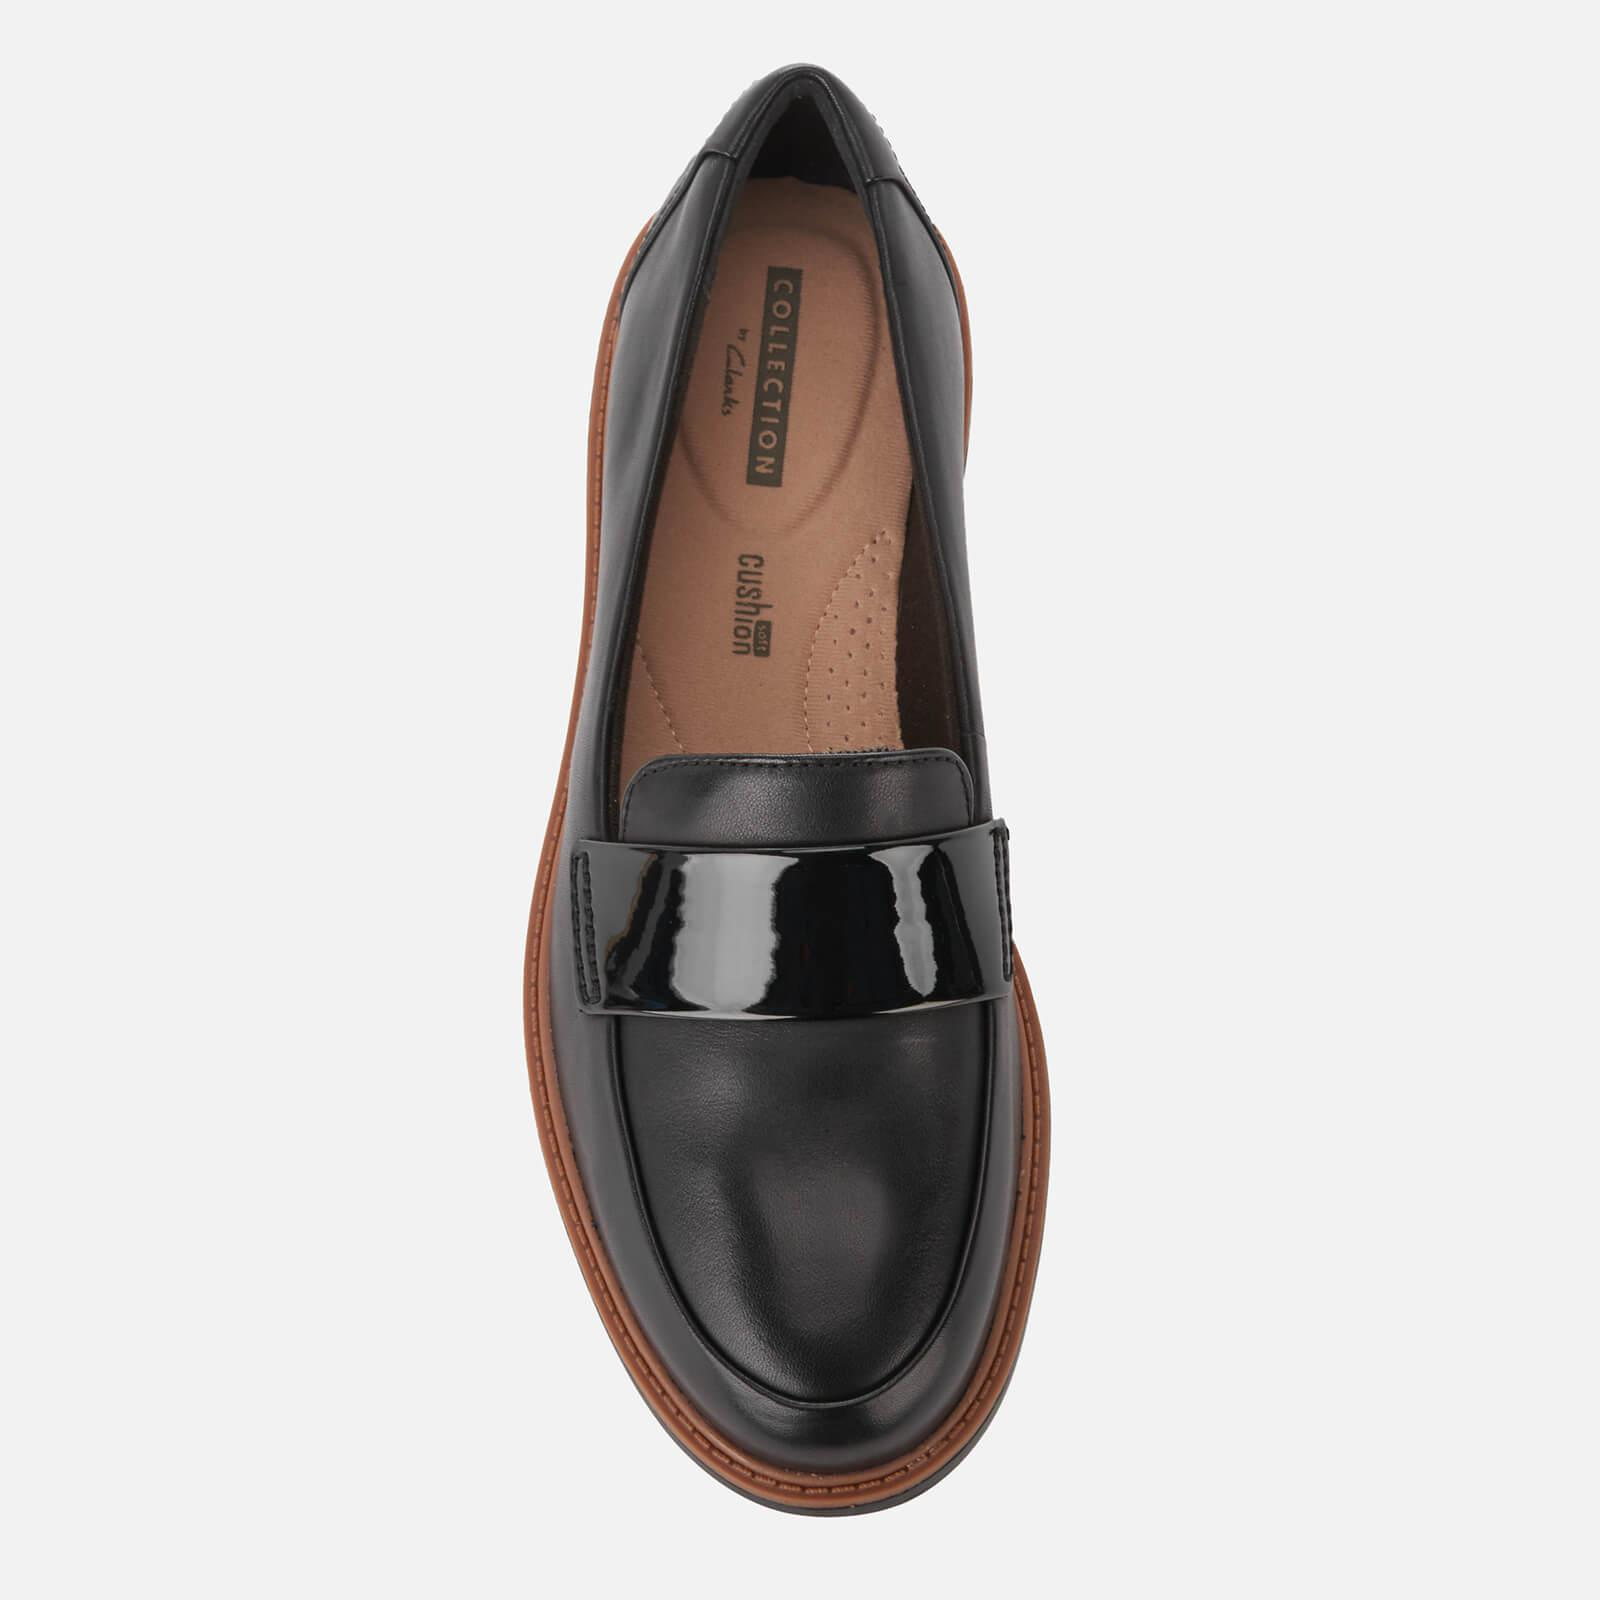 965c2e39288 ... Raisie Arlie Leather Loafers - Lyst. View fullscreen